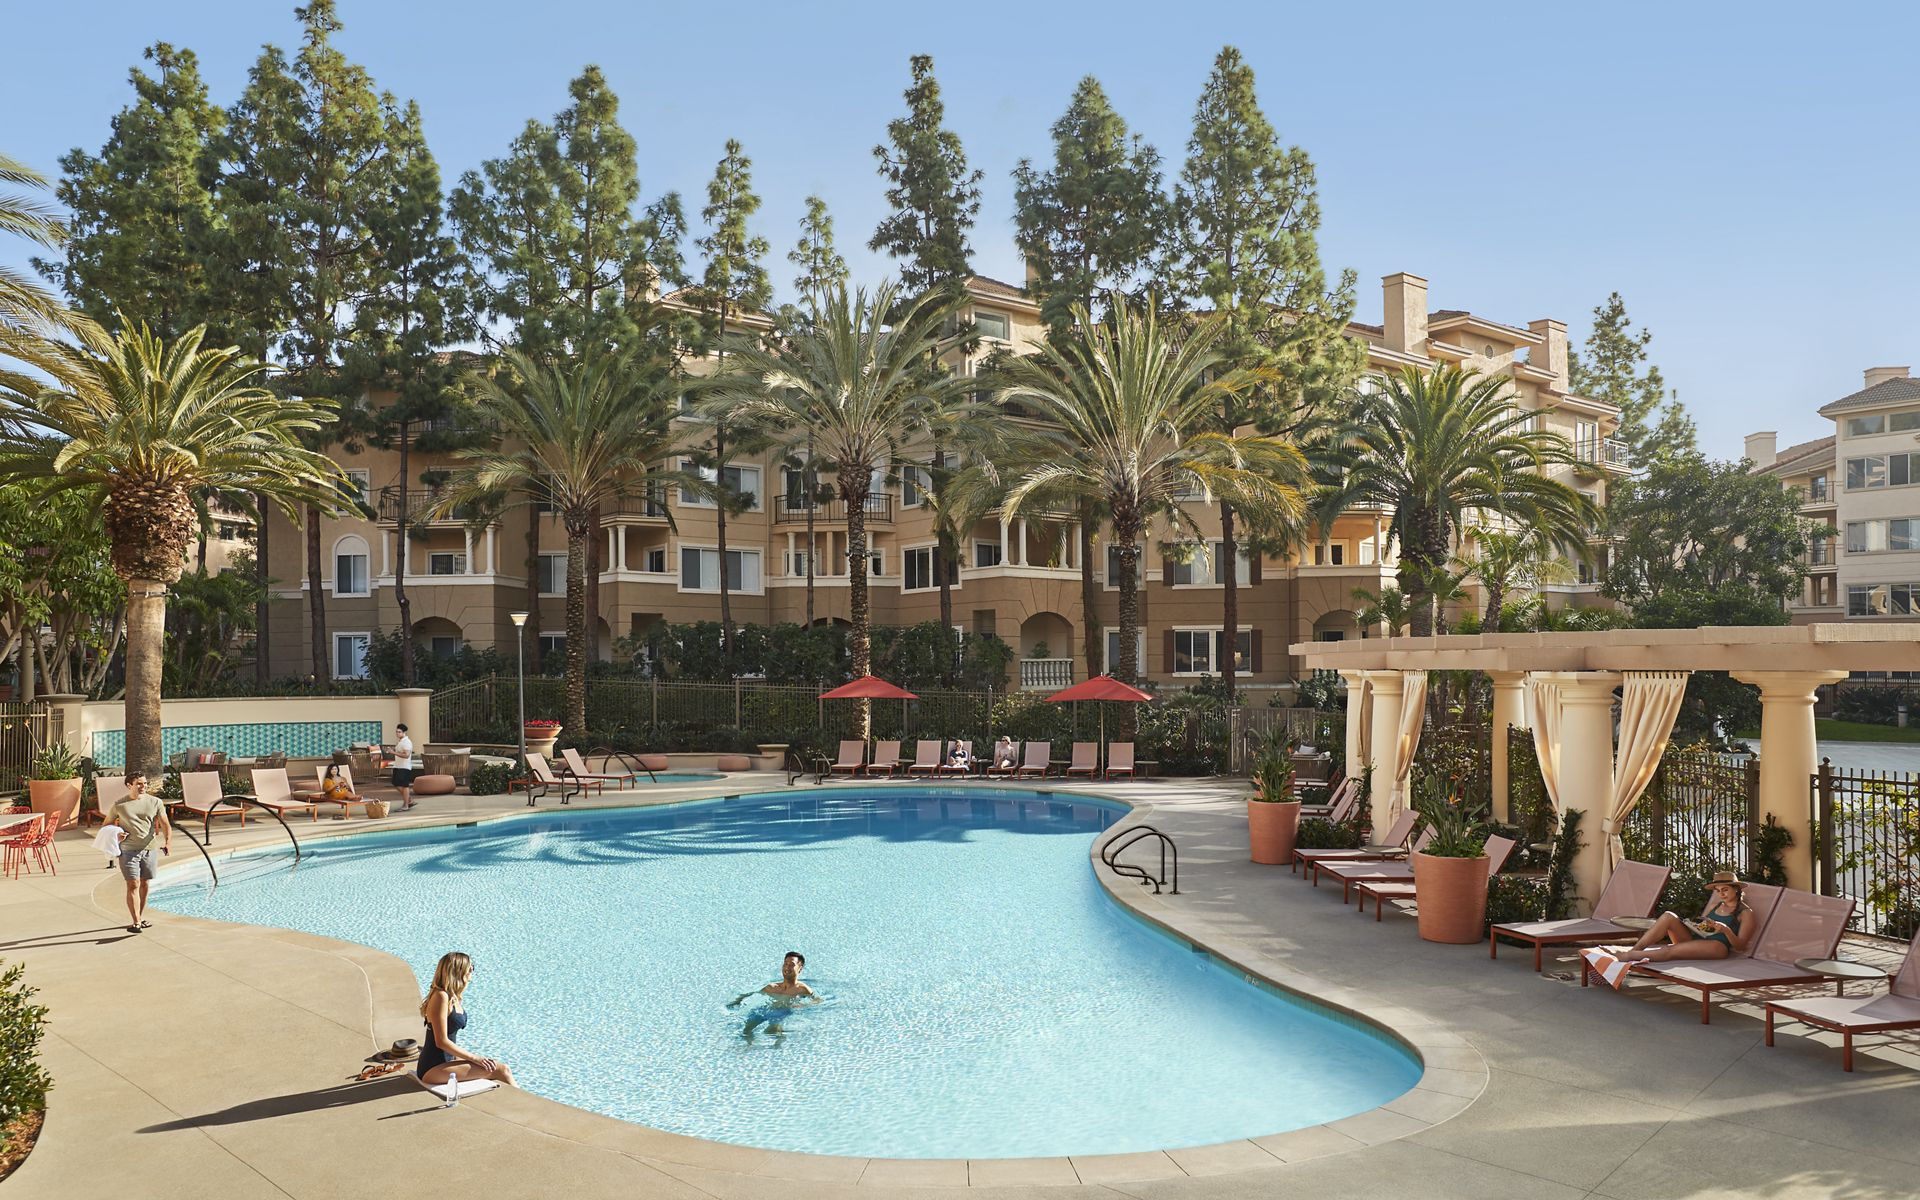 People spending time by pool at The Villas of Renaissance Apartment Homes in San Diego, CA.